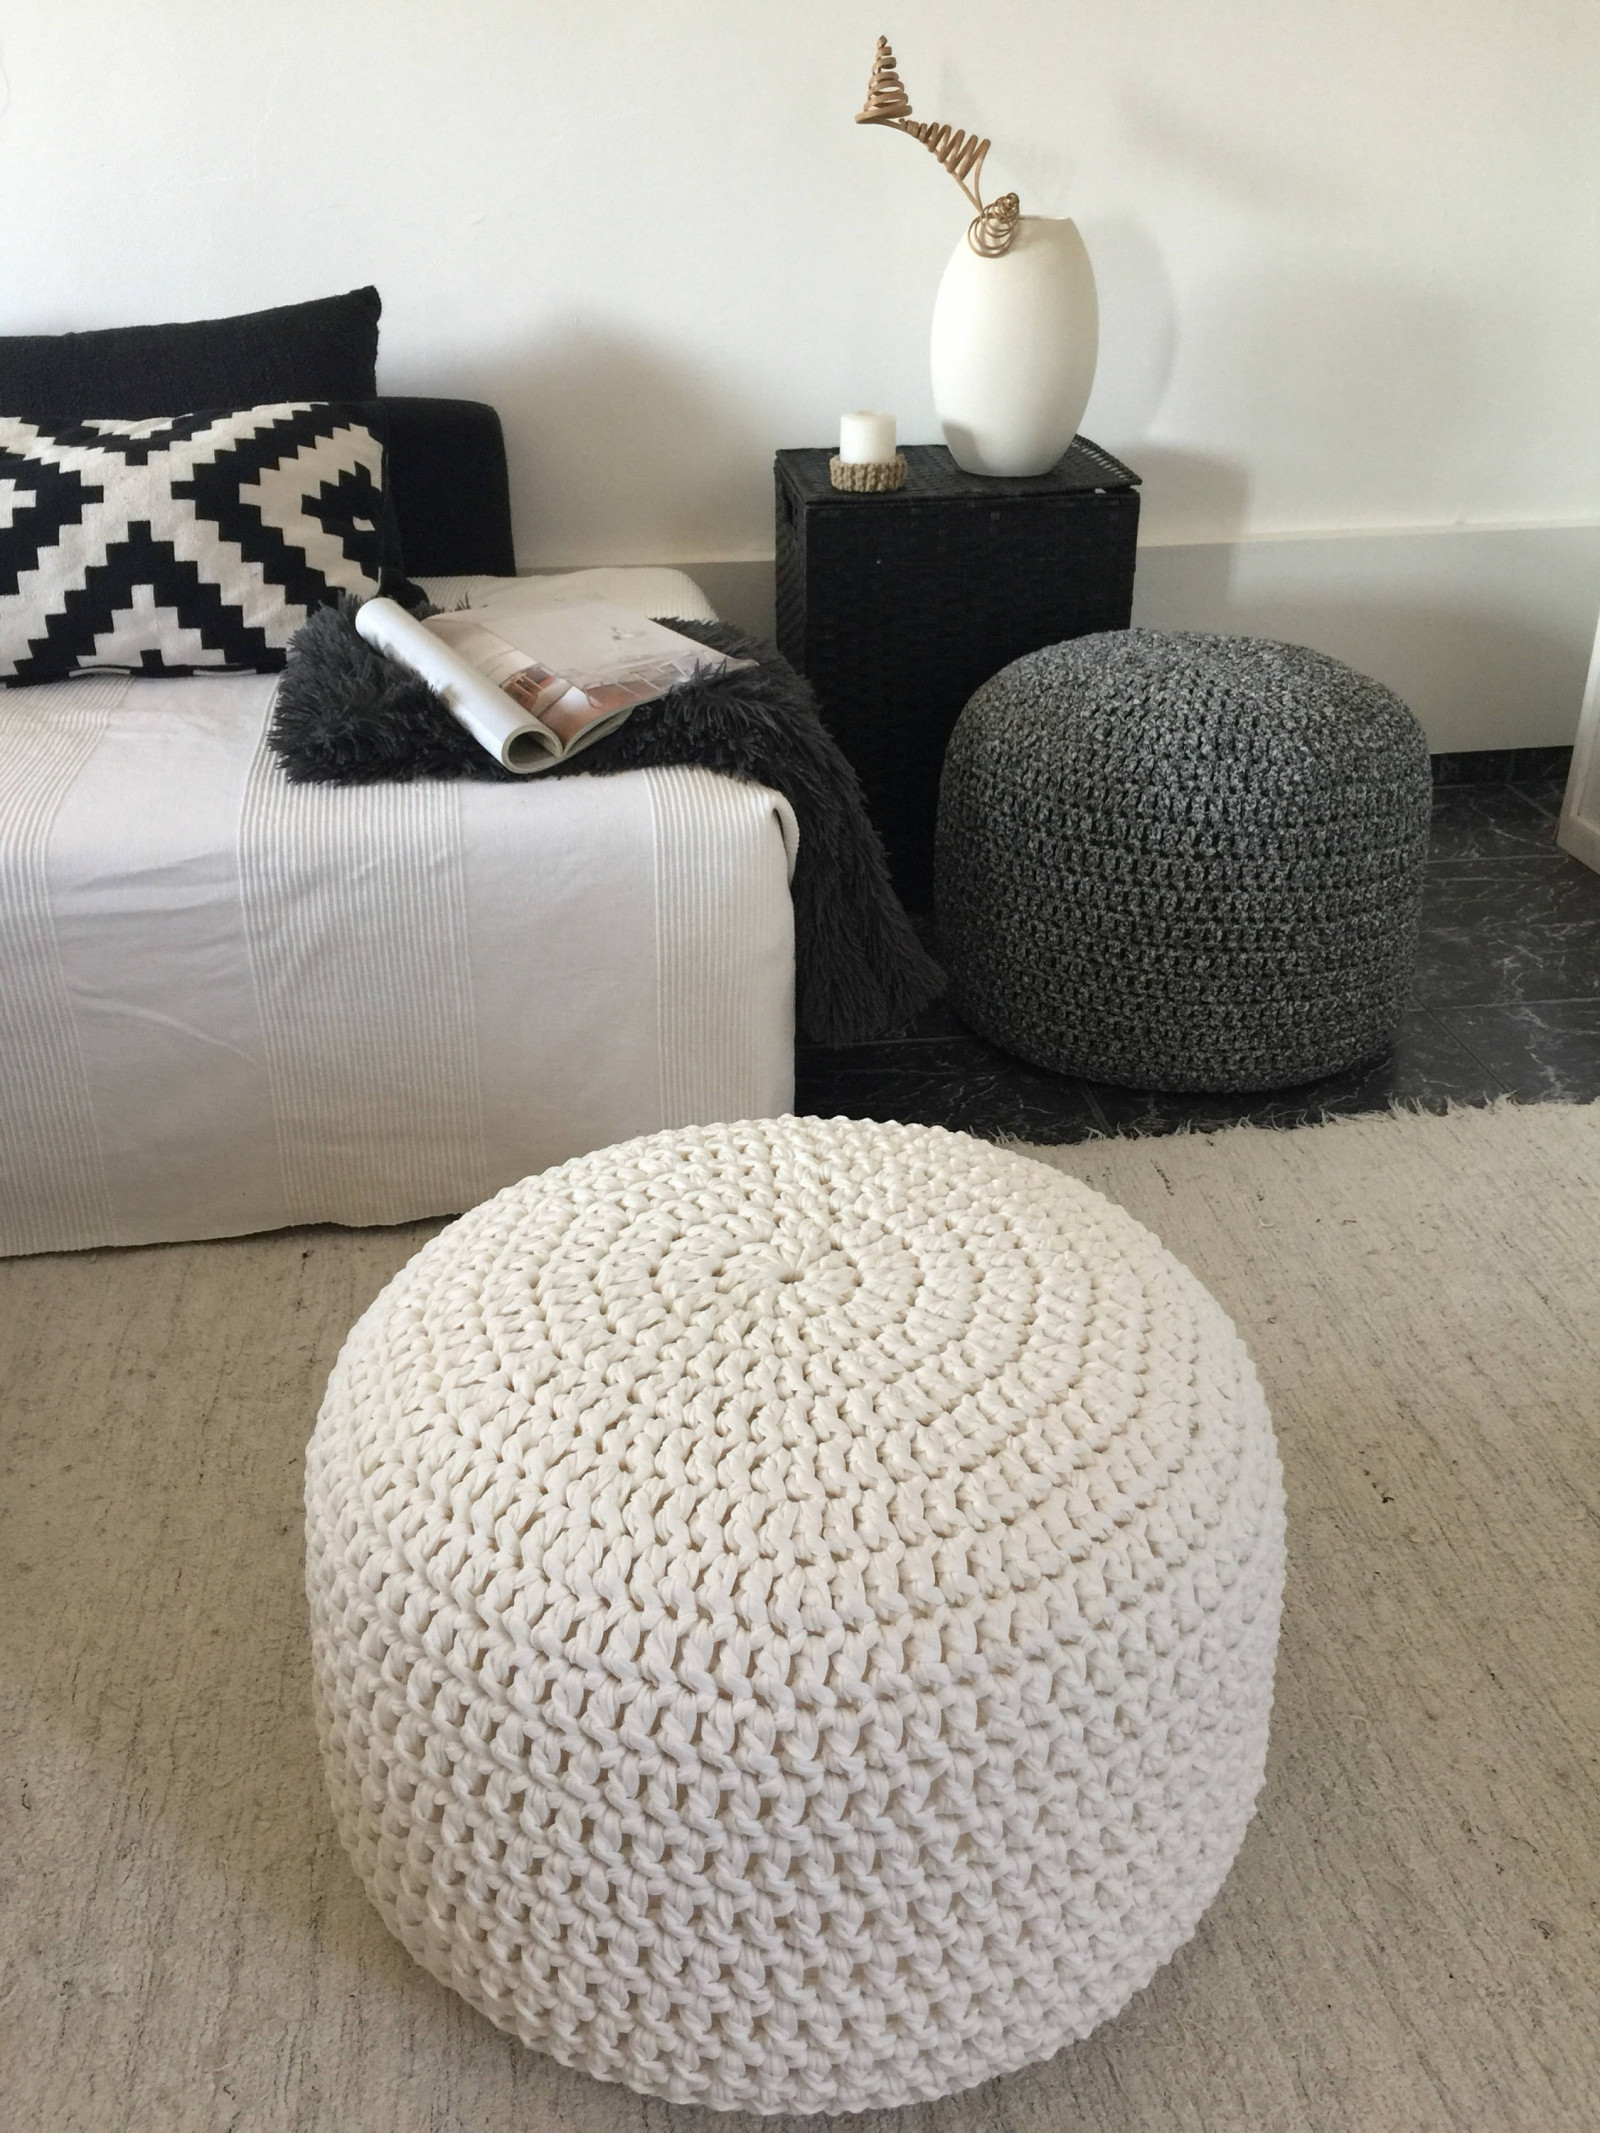 Crochet Ottoman Elegant Crochet Round Pouf Ottoman Nursery Footstool Pouf Of Incredible 42 Ideas Crochet Ottoman